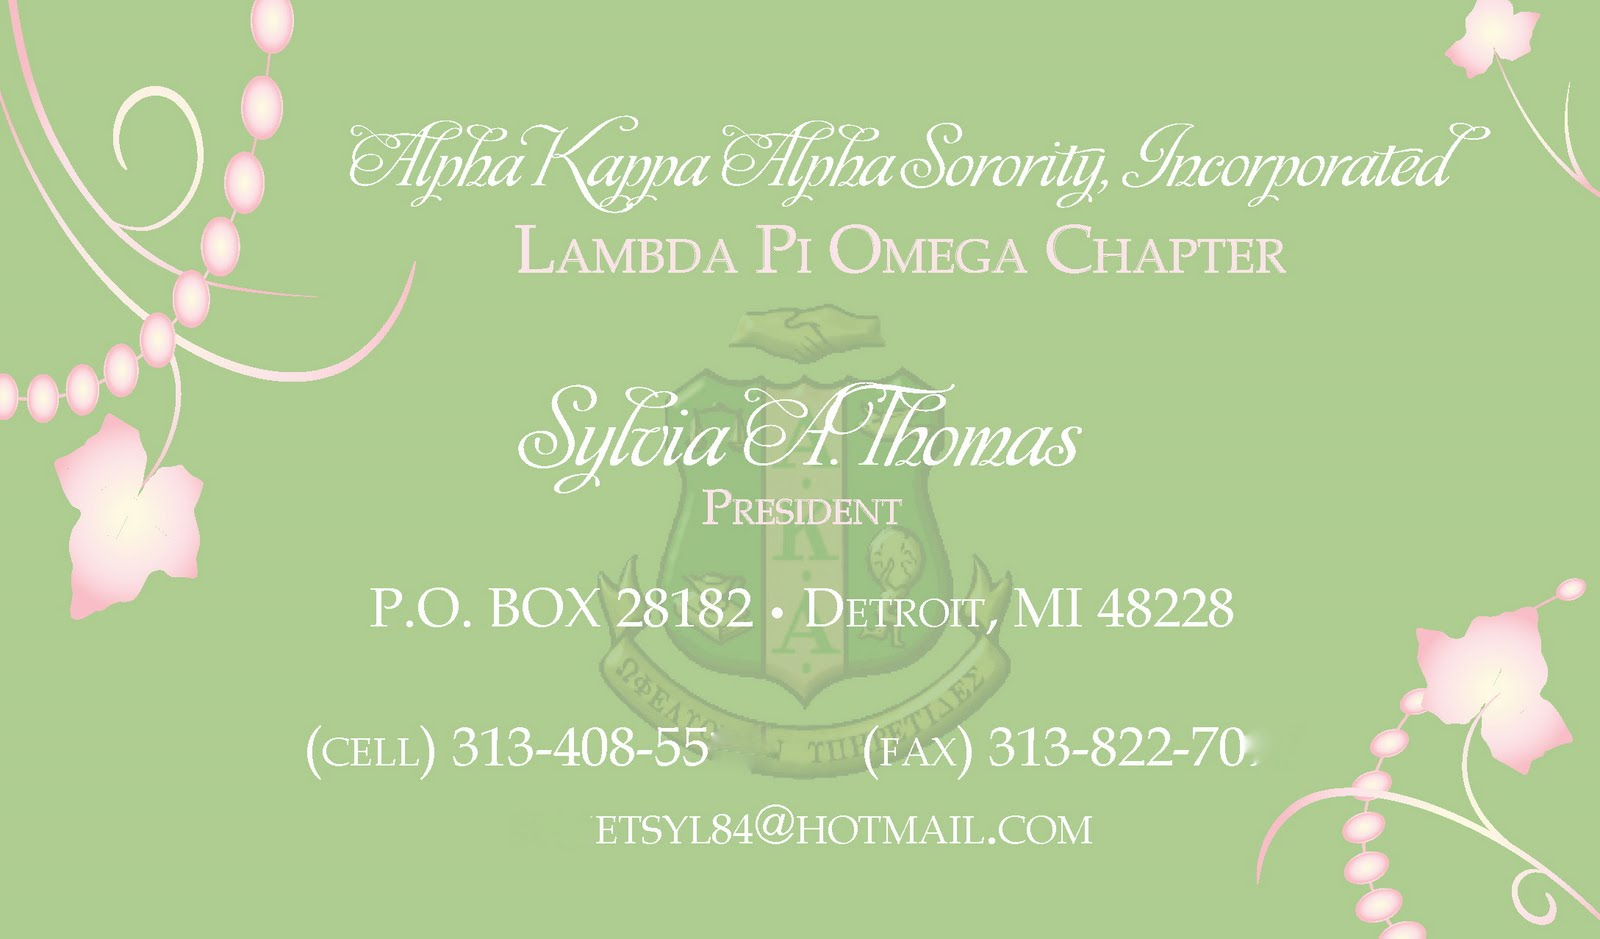 Calling Cards | Alpha Kappa Alpha Sorority, Inc. - Lepenn Designs ...